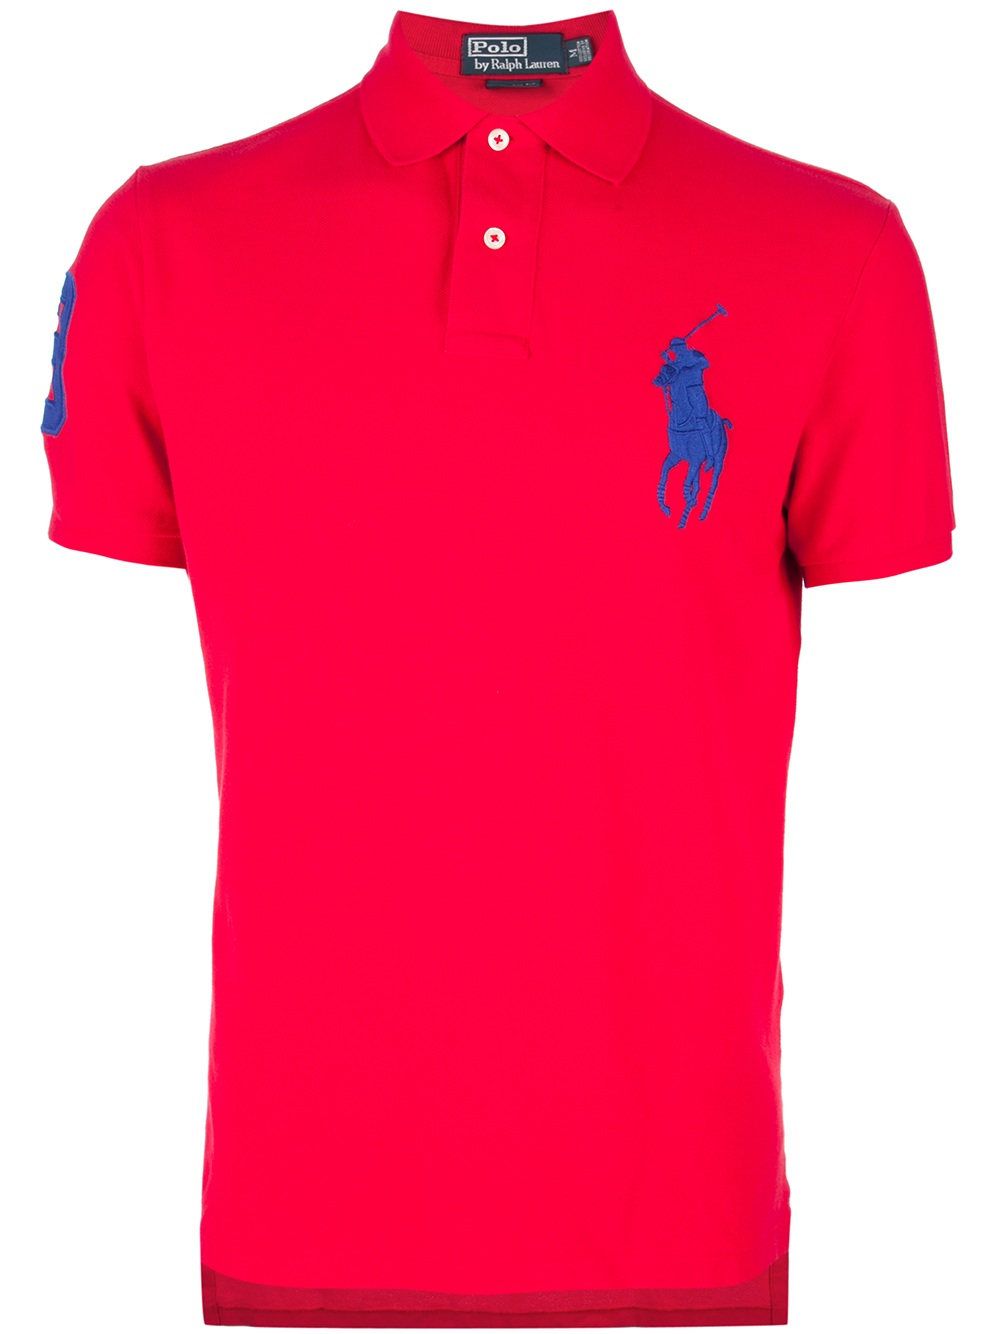 Lyst Polo Ralph Lauren Polo Shirt In Red For Men